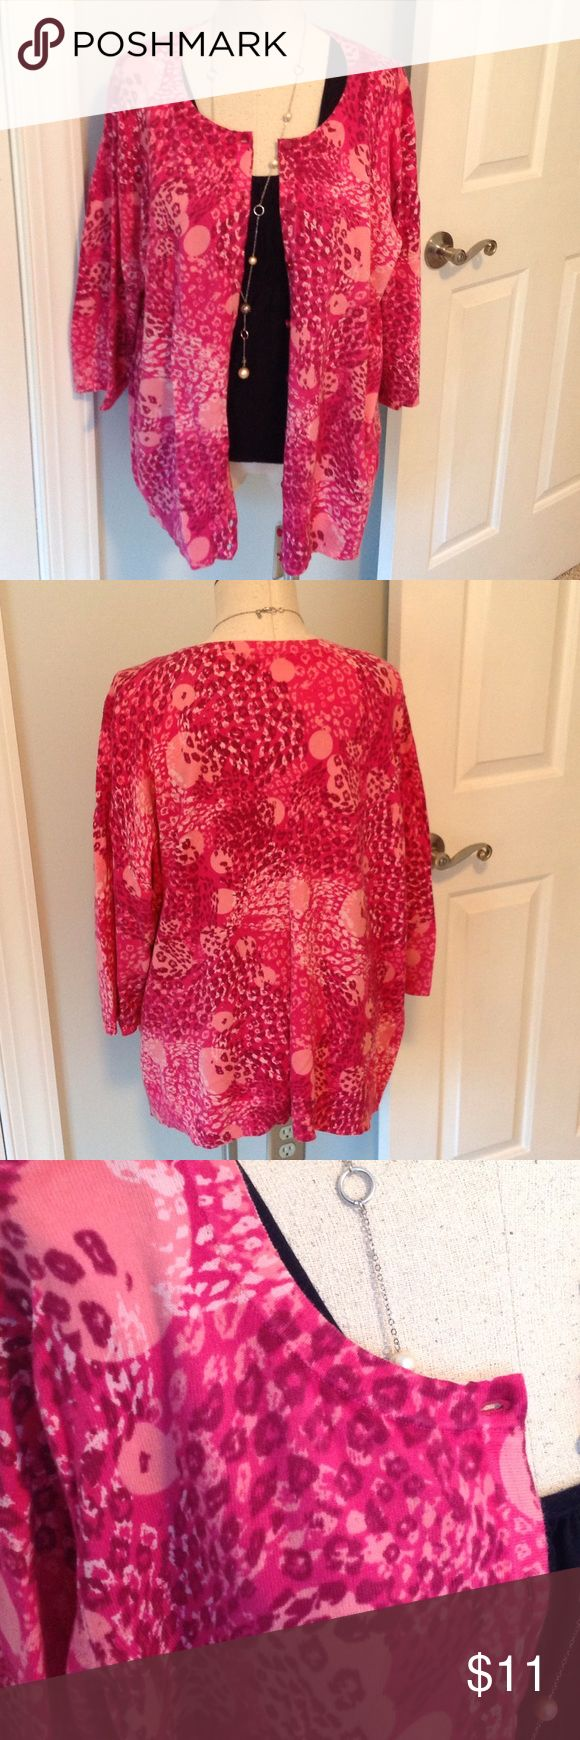 "Gorgeous pink cardigan sweater Shades of pink and 3/4 sleeves. 26"" long HAMPSHIRE STUDIO Sweaters Cardigans"